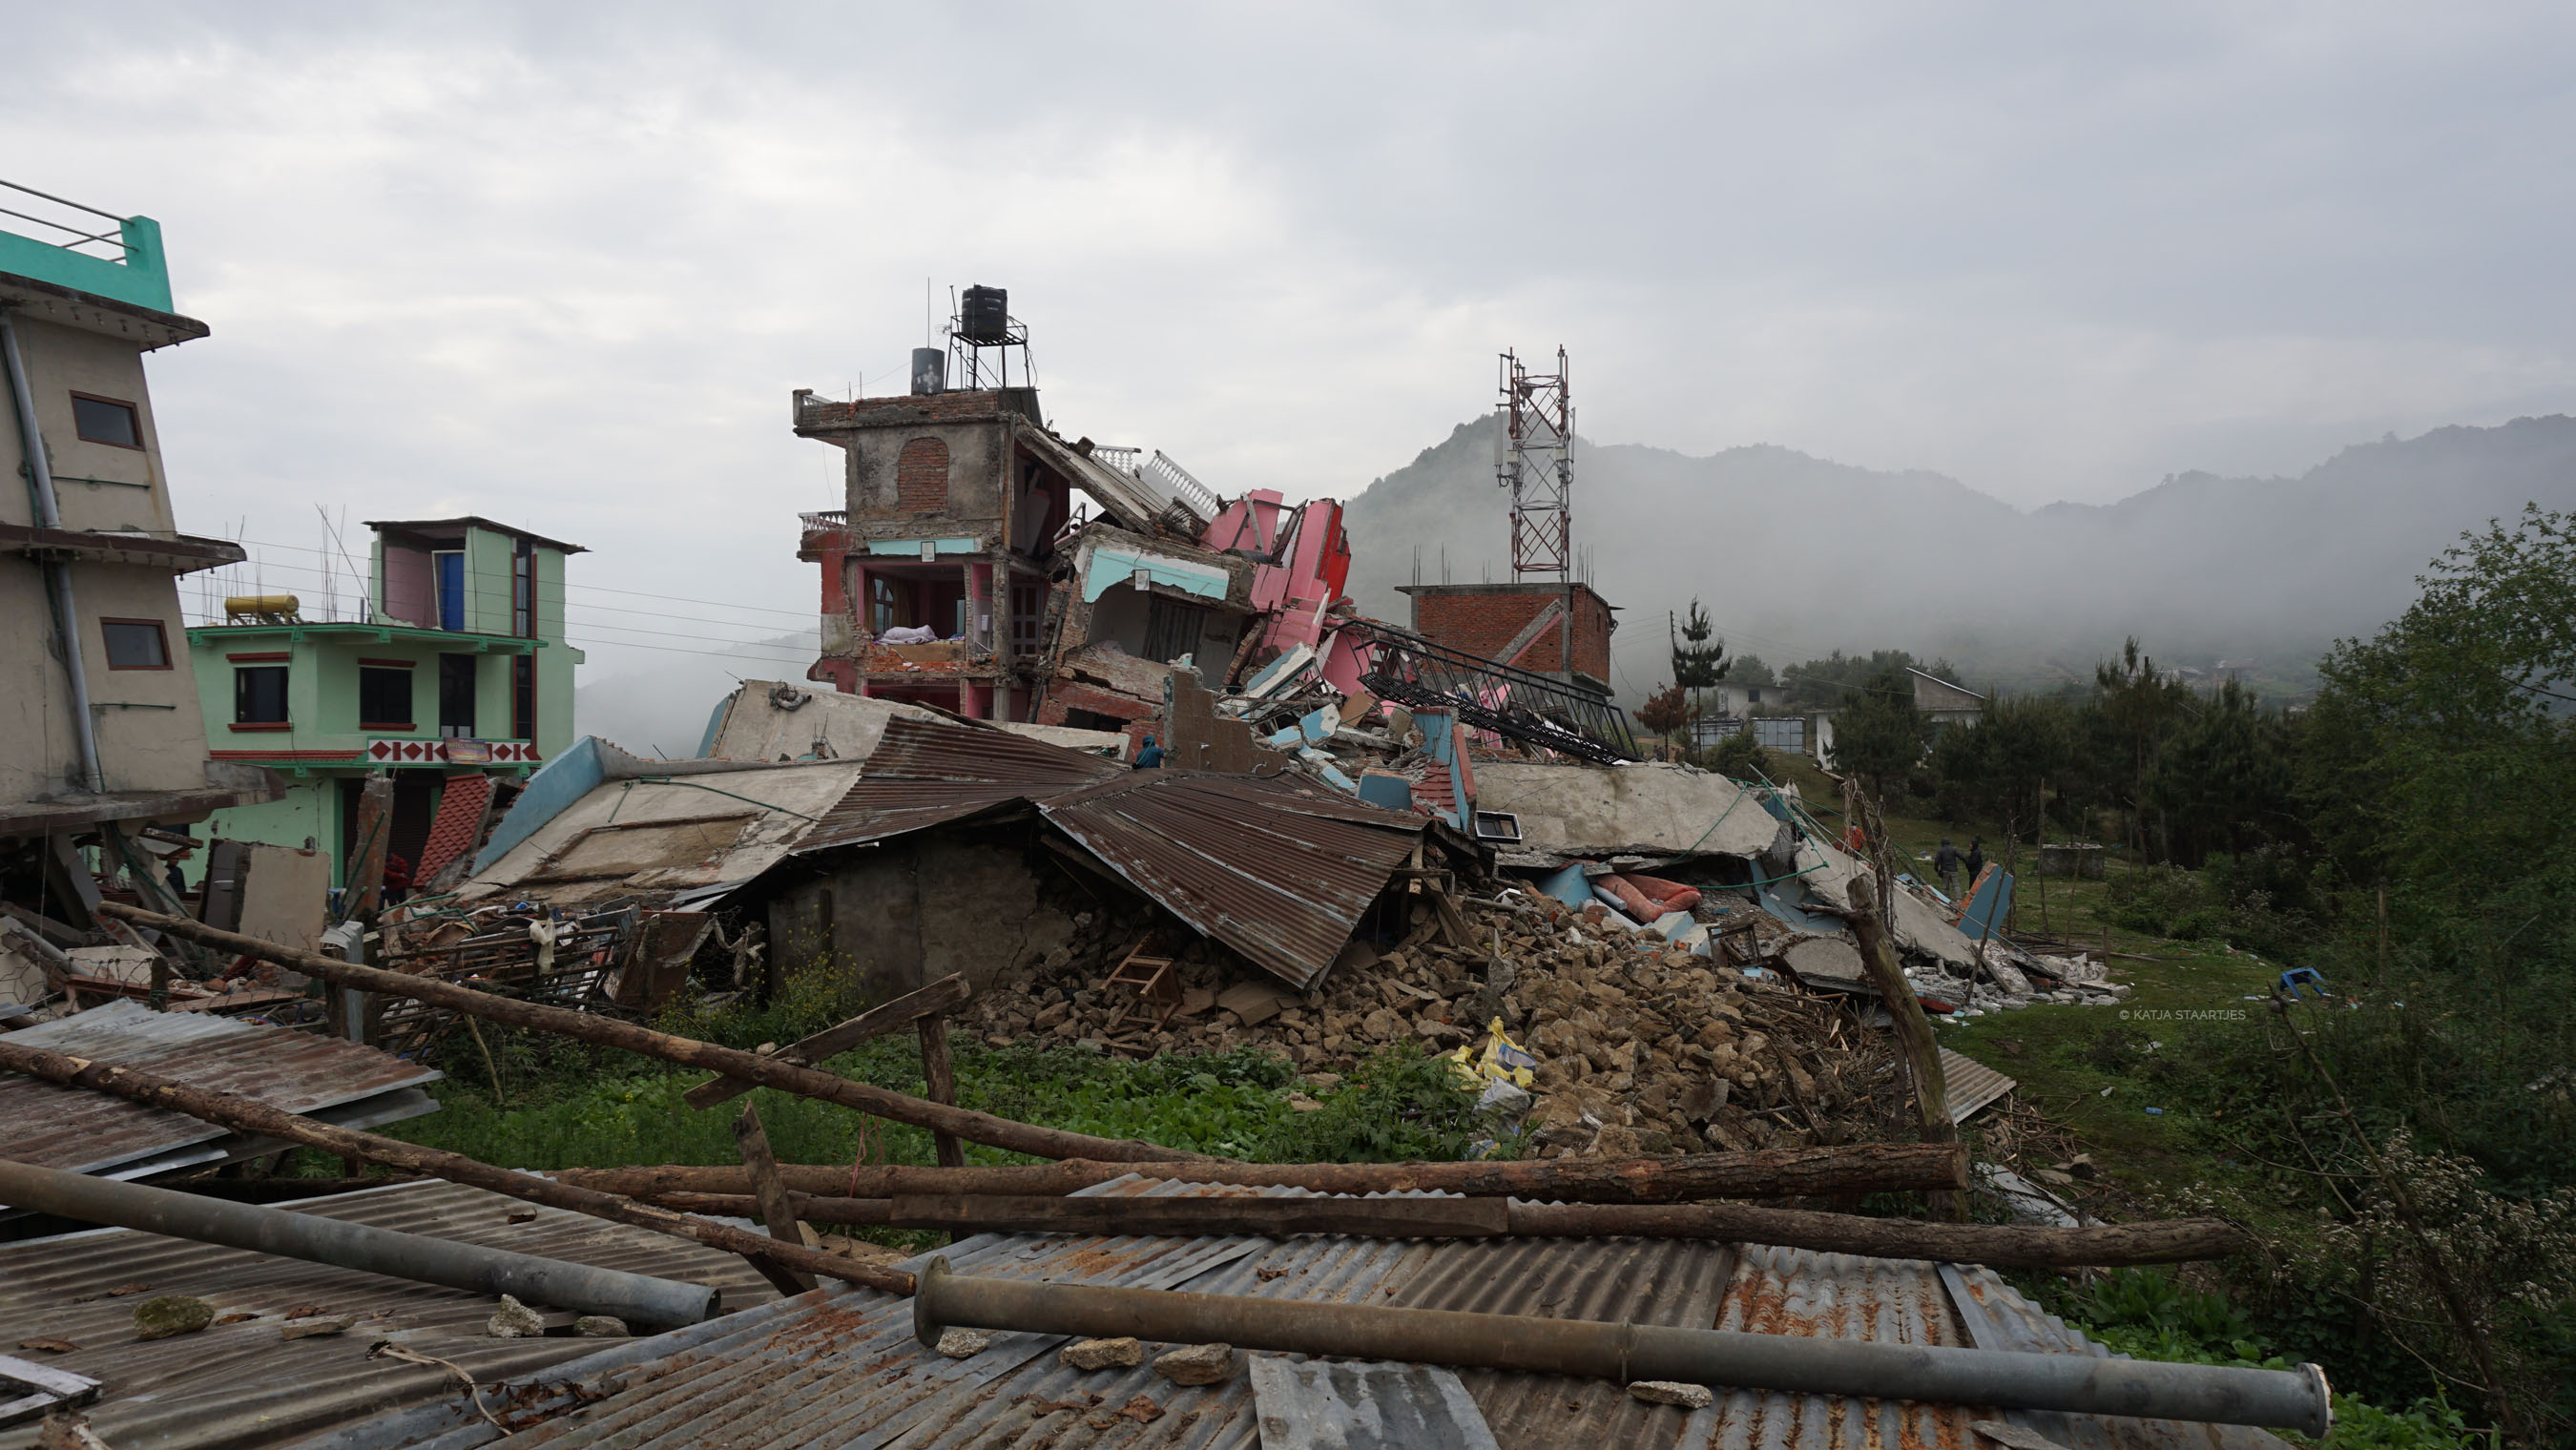 Expedition stopped – Help Nepal!